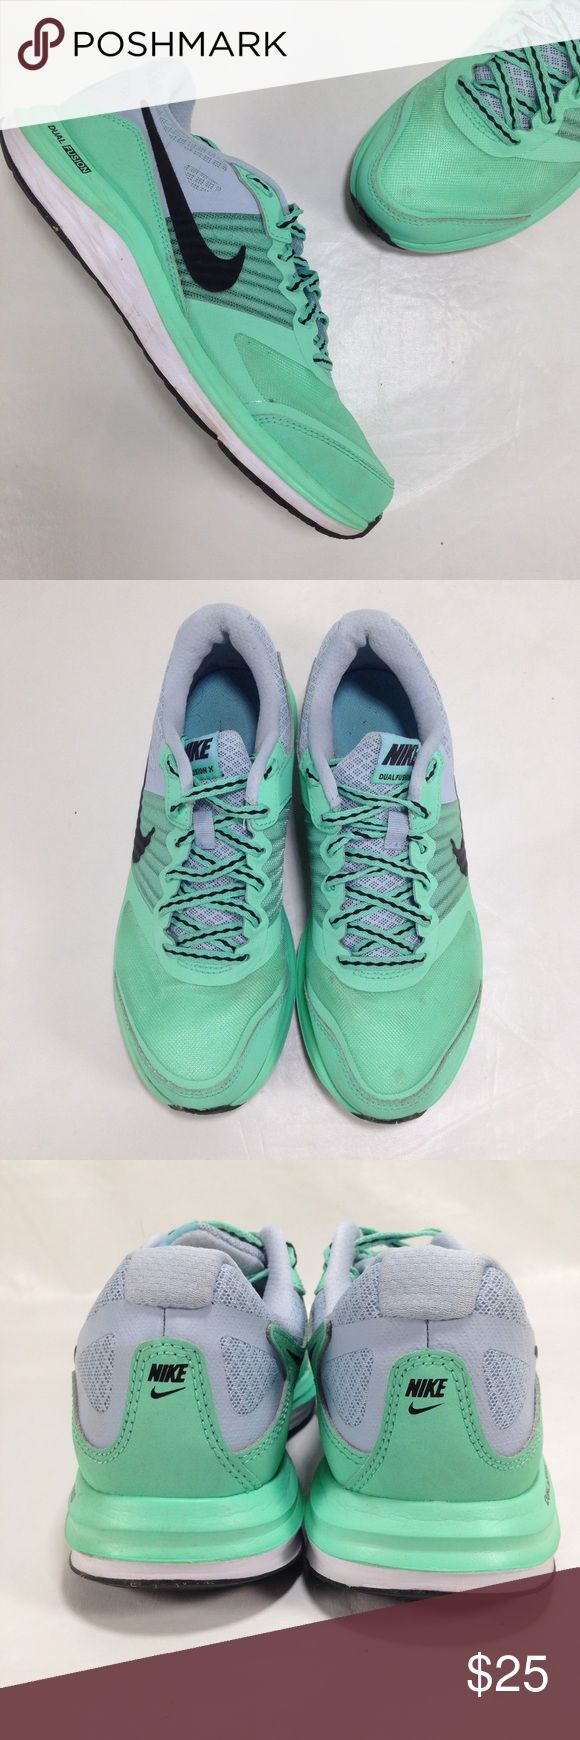 Nike Dual Fusion X Mint Green Has a couple spots. Overall good condition. Nike Shoes Athletic Shoes